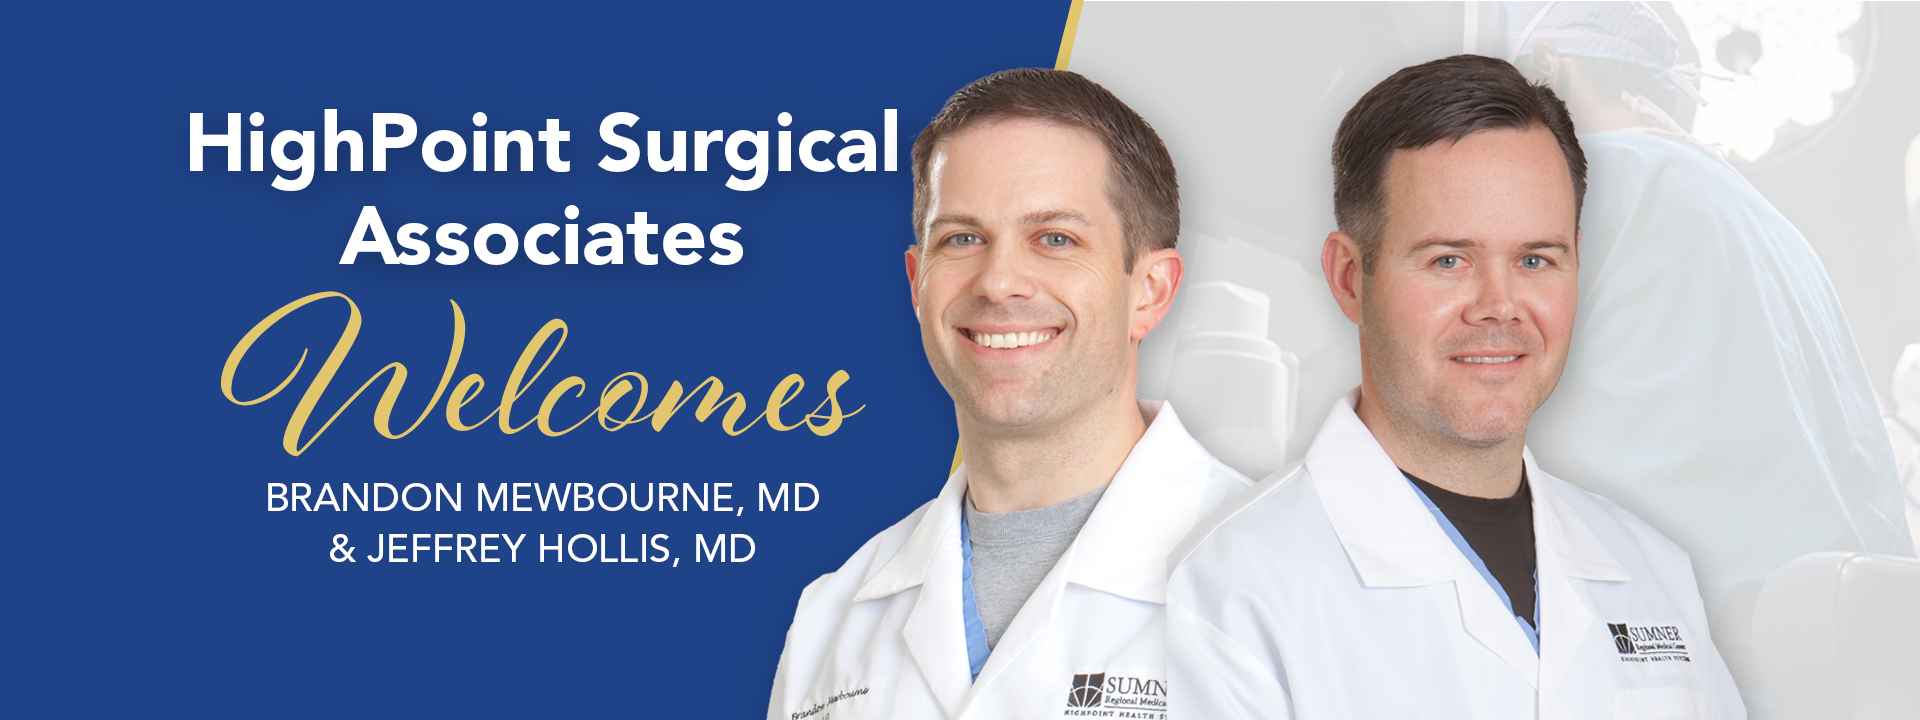 HighPoint Surgical welcomes Hollis and Mewbourne